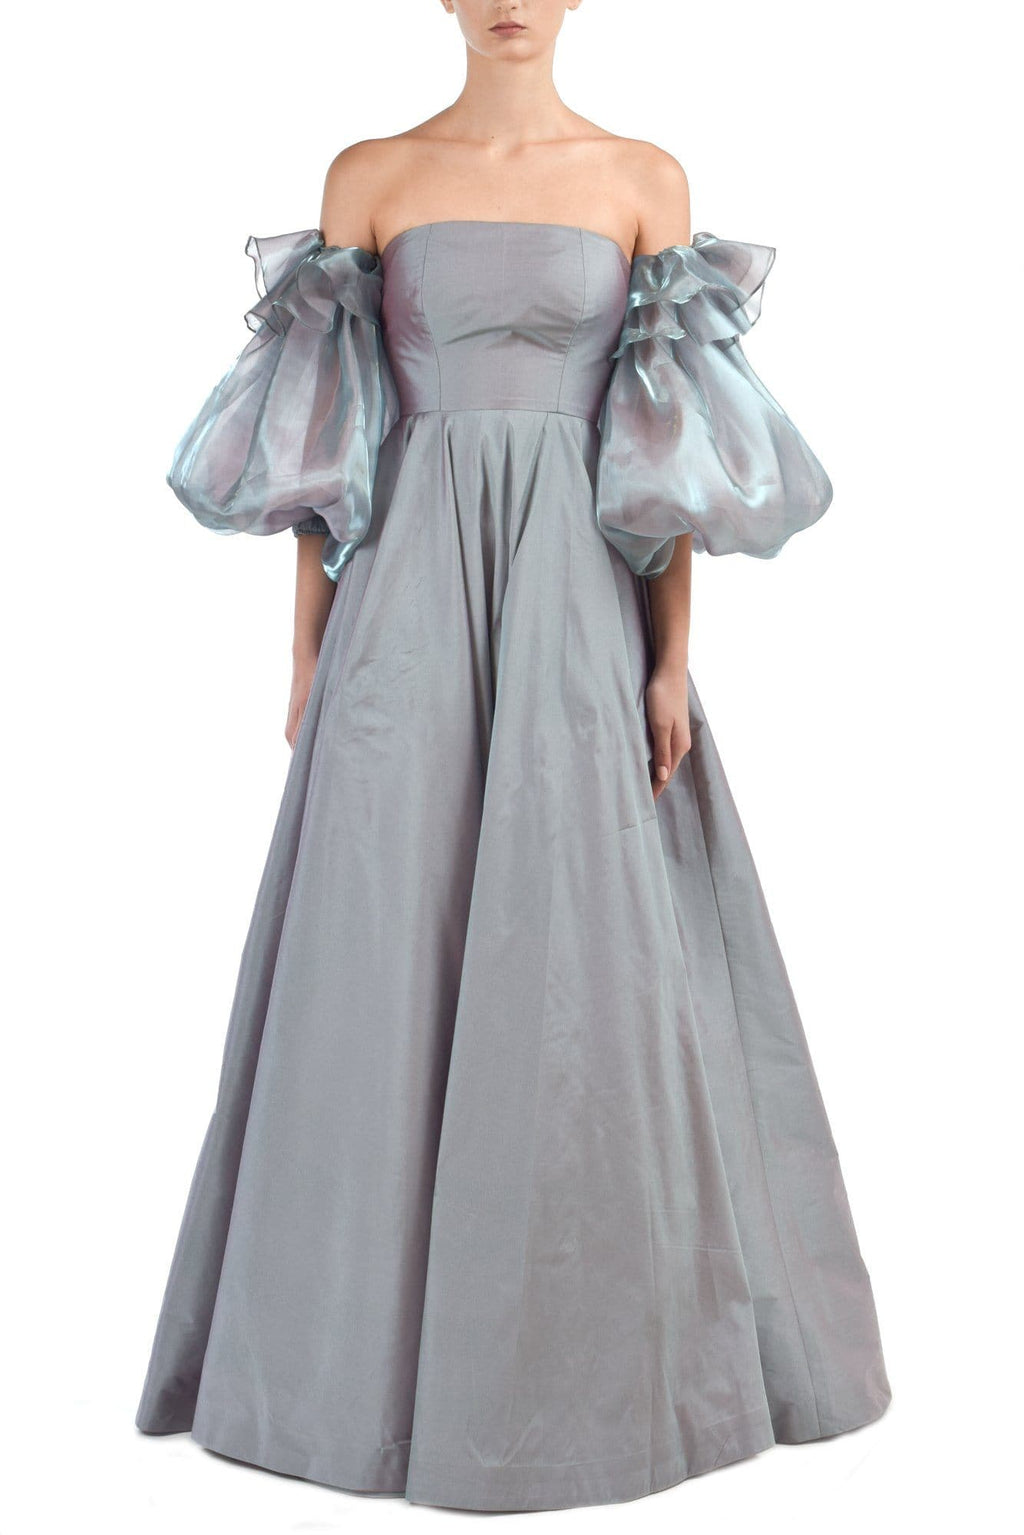 Taffeta & Glass Organza Gown - BYTRIBUTE